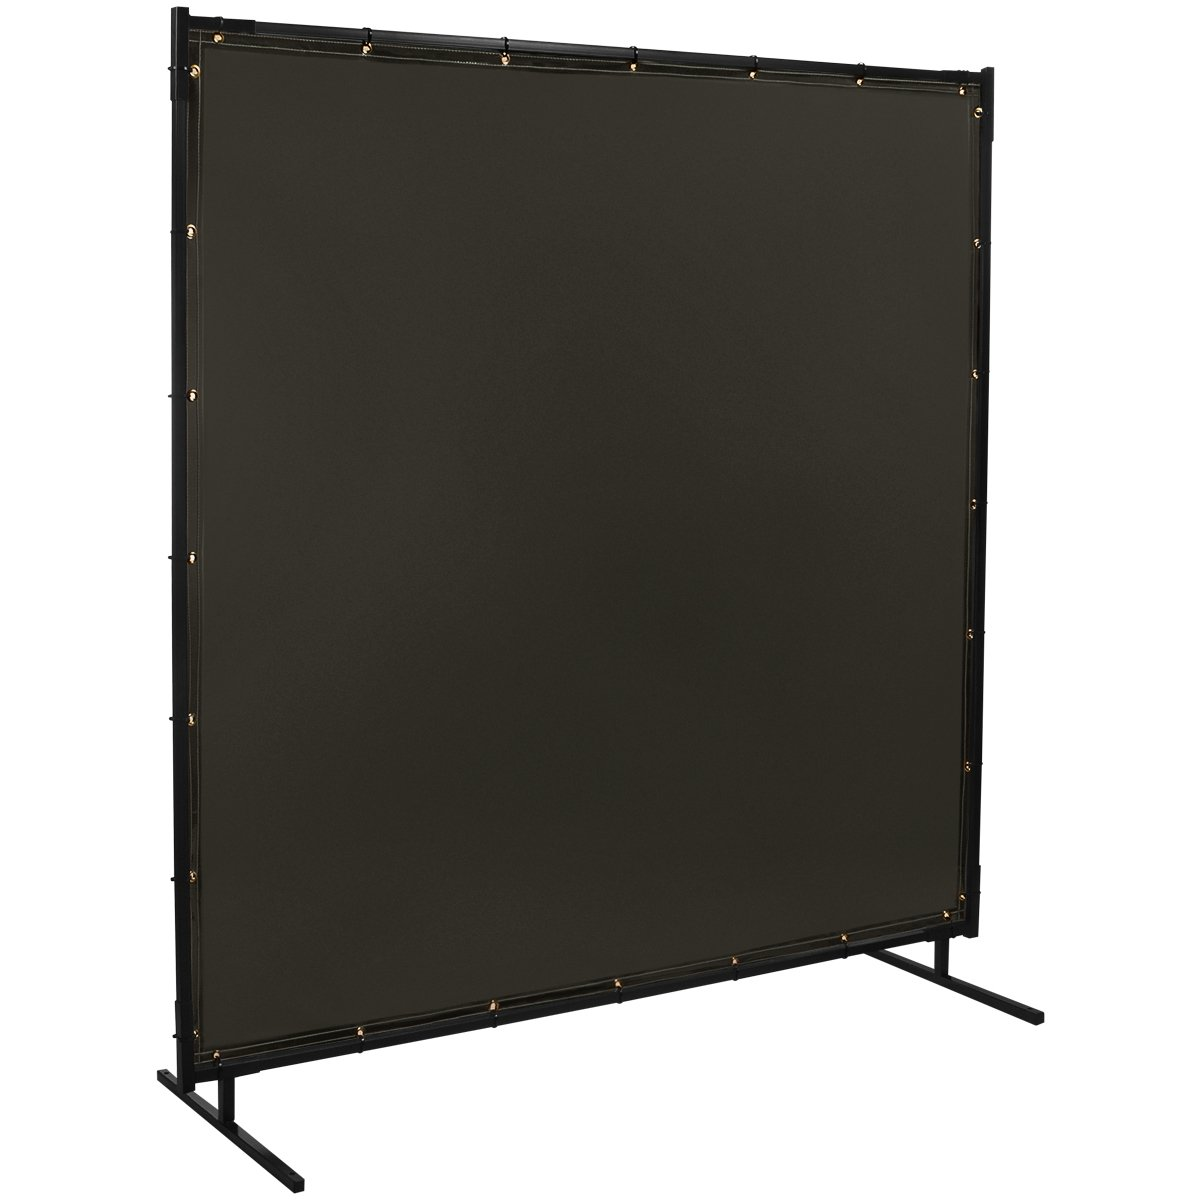 Steiner 532HD-6X10 Protect-O-Screen HD Welding Screen with Flame Retardant 14 Mil Tinted Transparent Vinyl Curtain, Gray, 6' x 10' 6' x 10' ERB